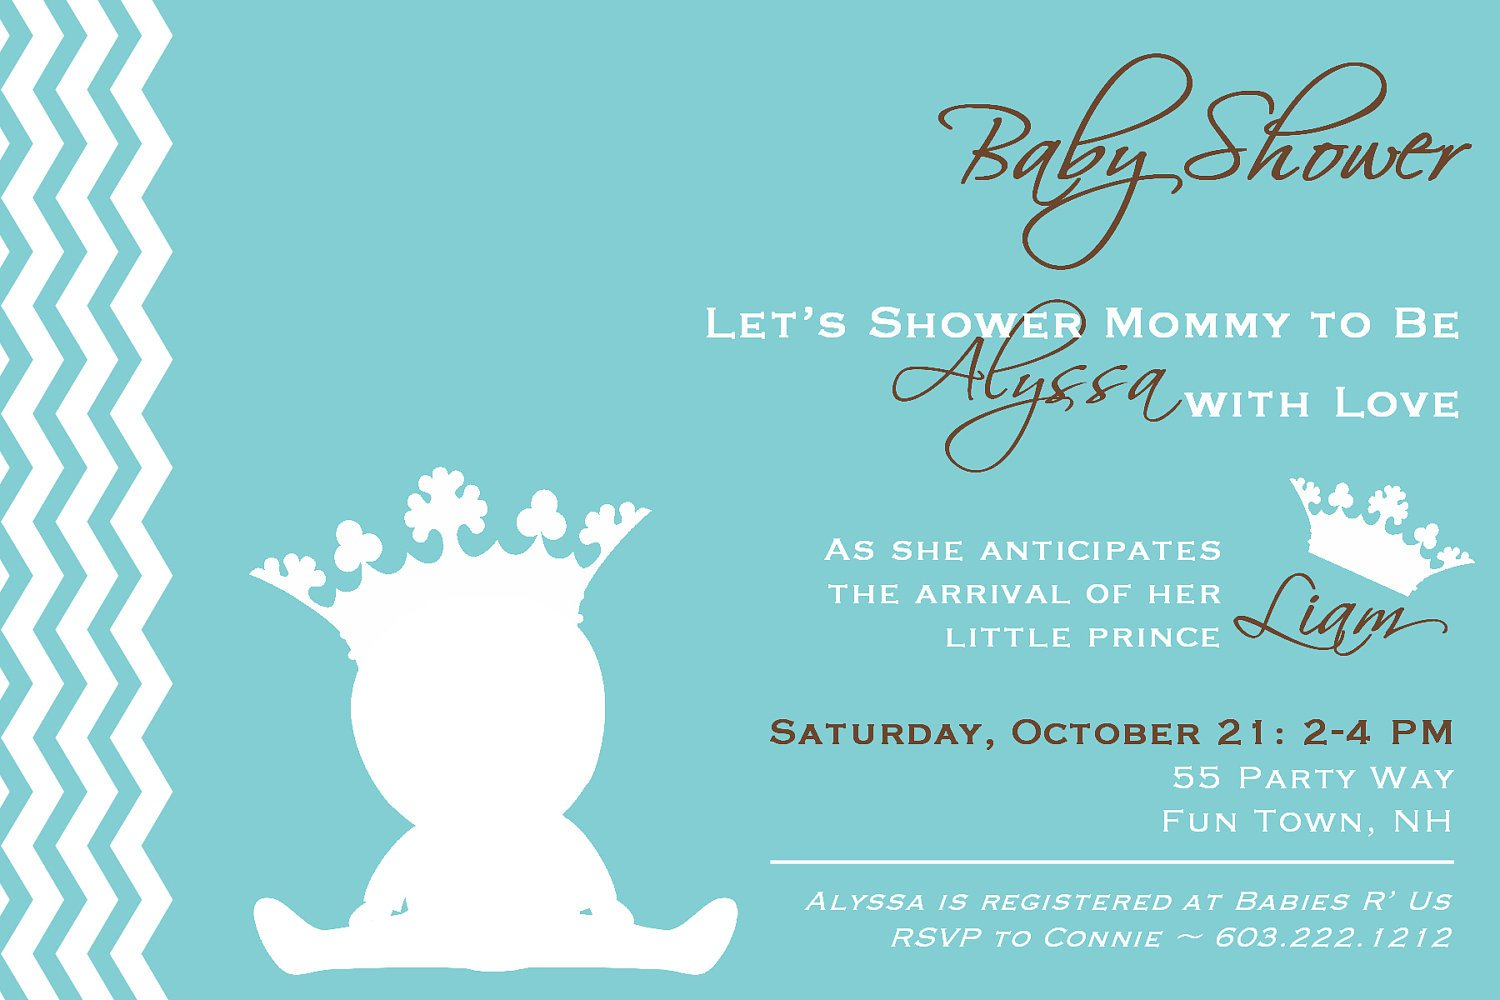 Royal Prince Baby Shower Invitation Template